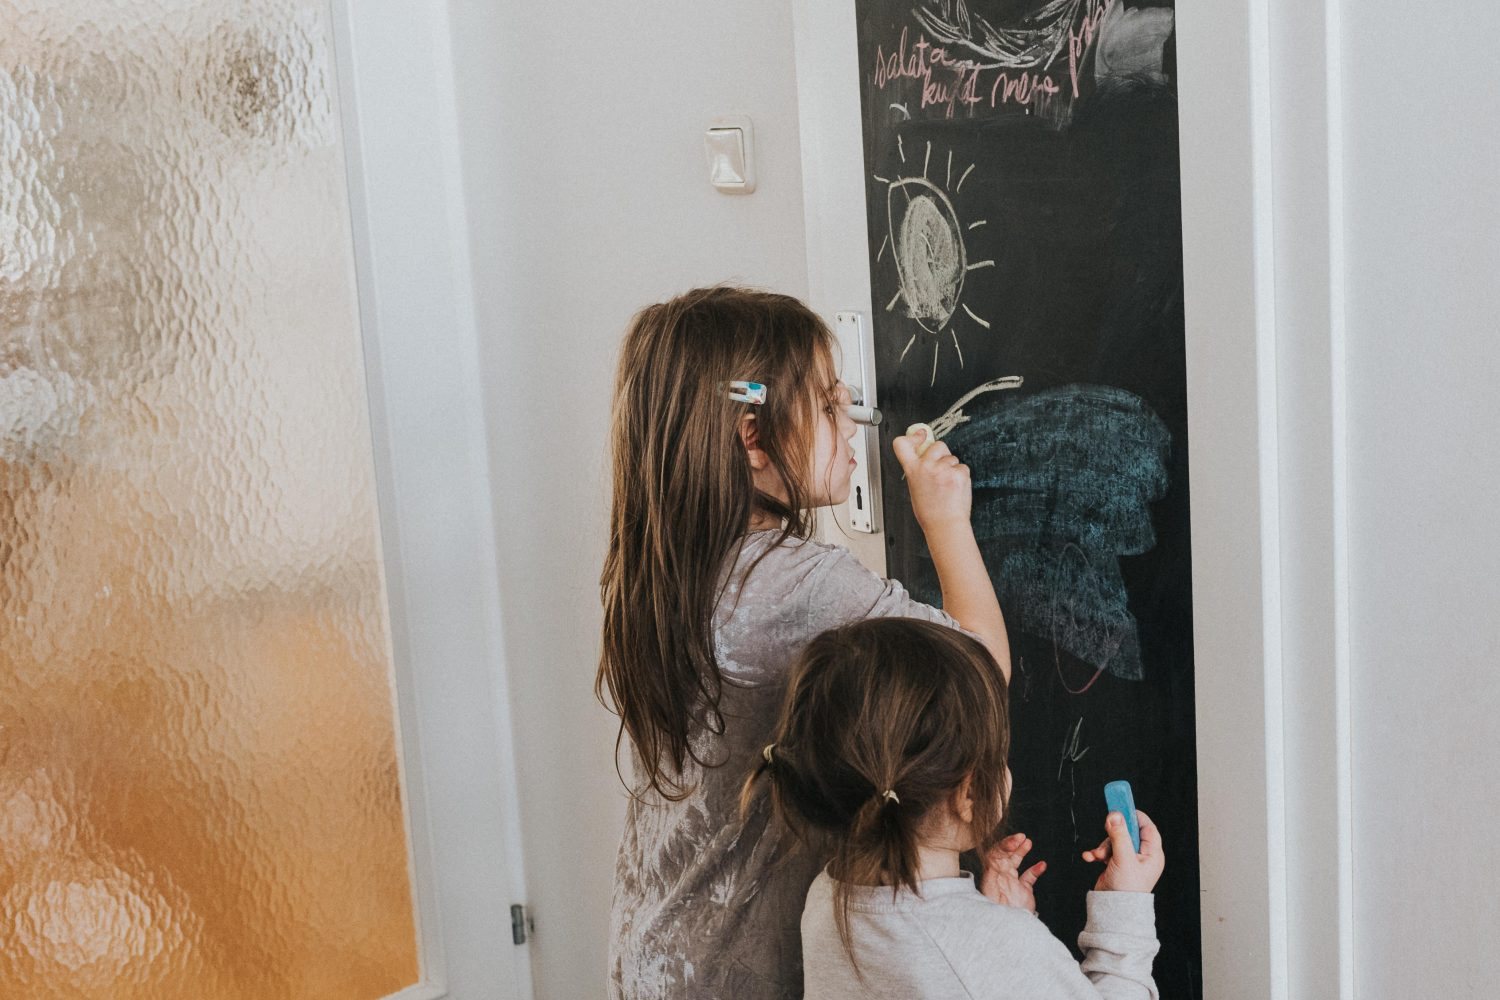 djeca crtaju po ploči na vratima, kids drawing on a door board